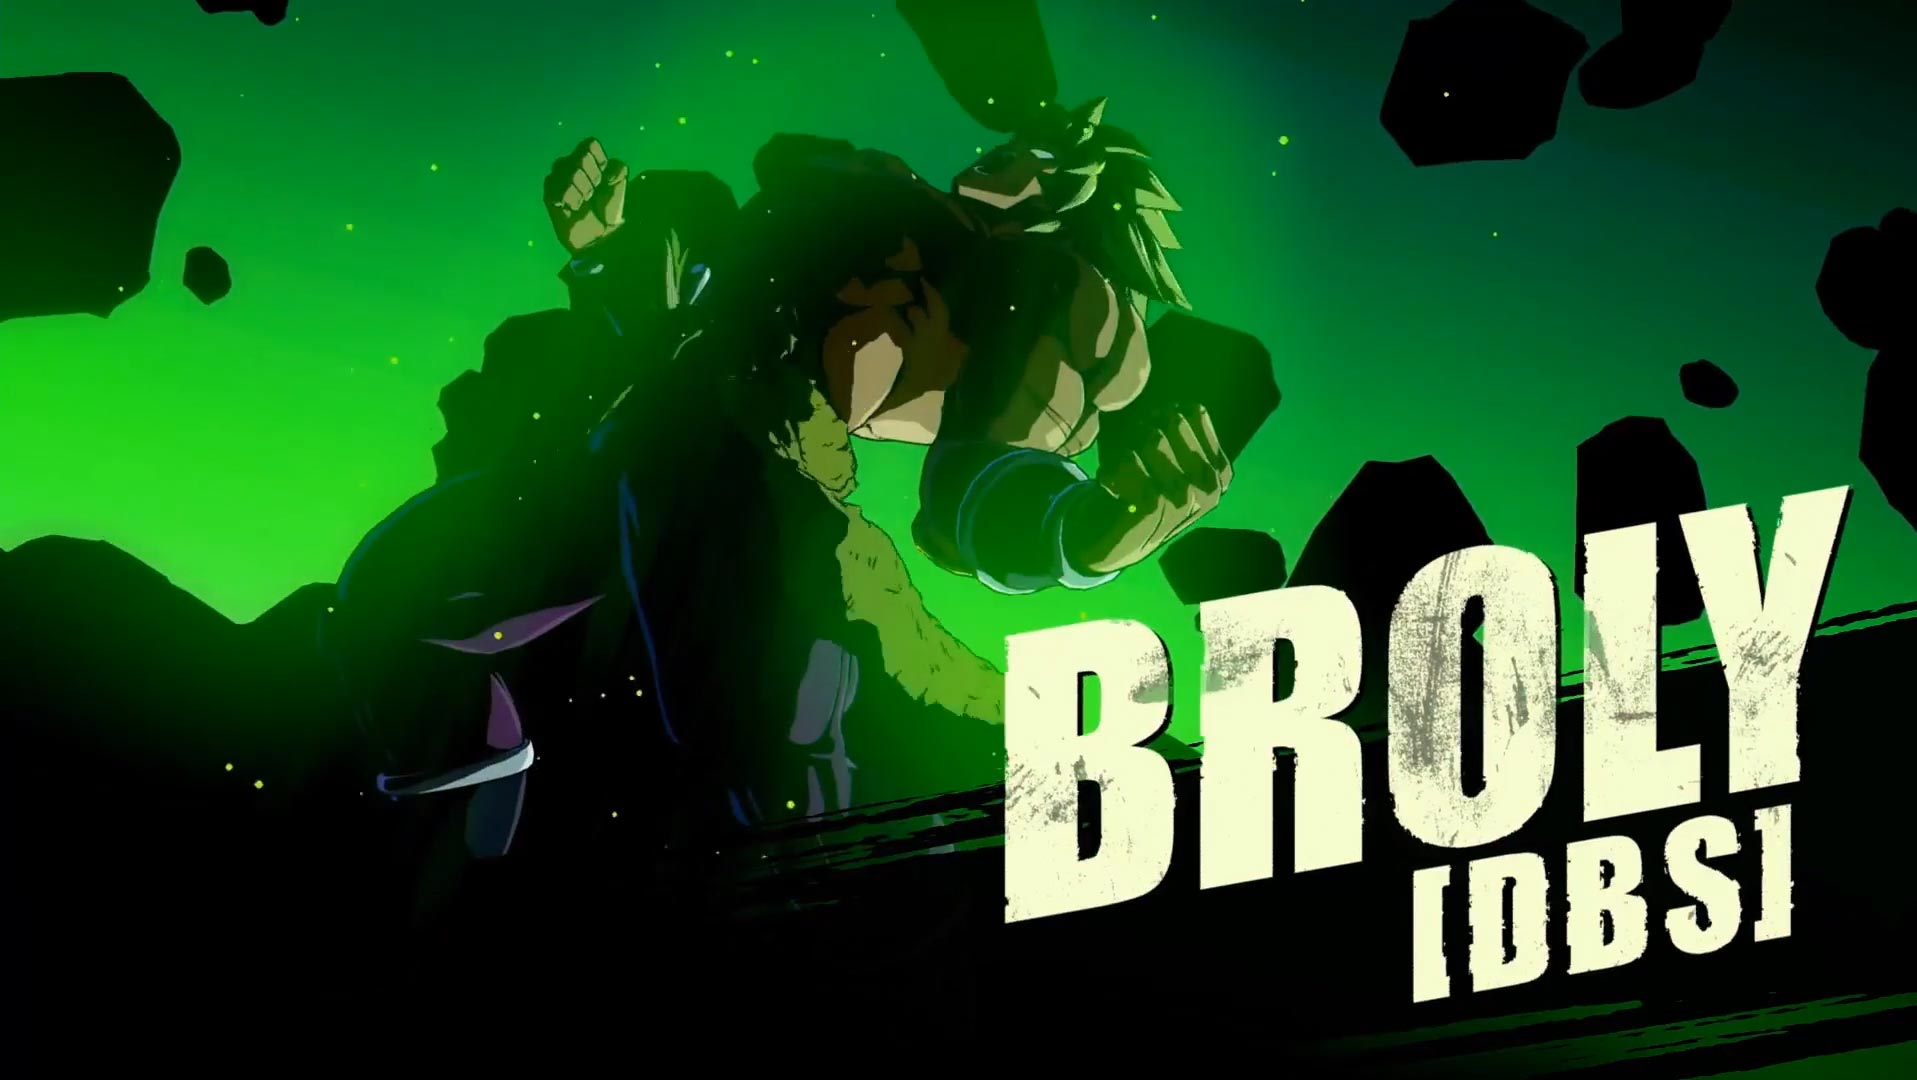 Super Broly Trailer 3 out of 6 image gallery